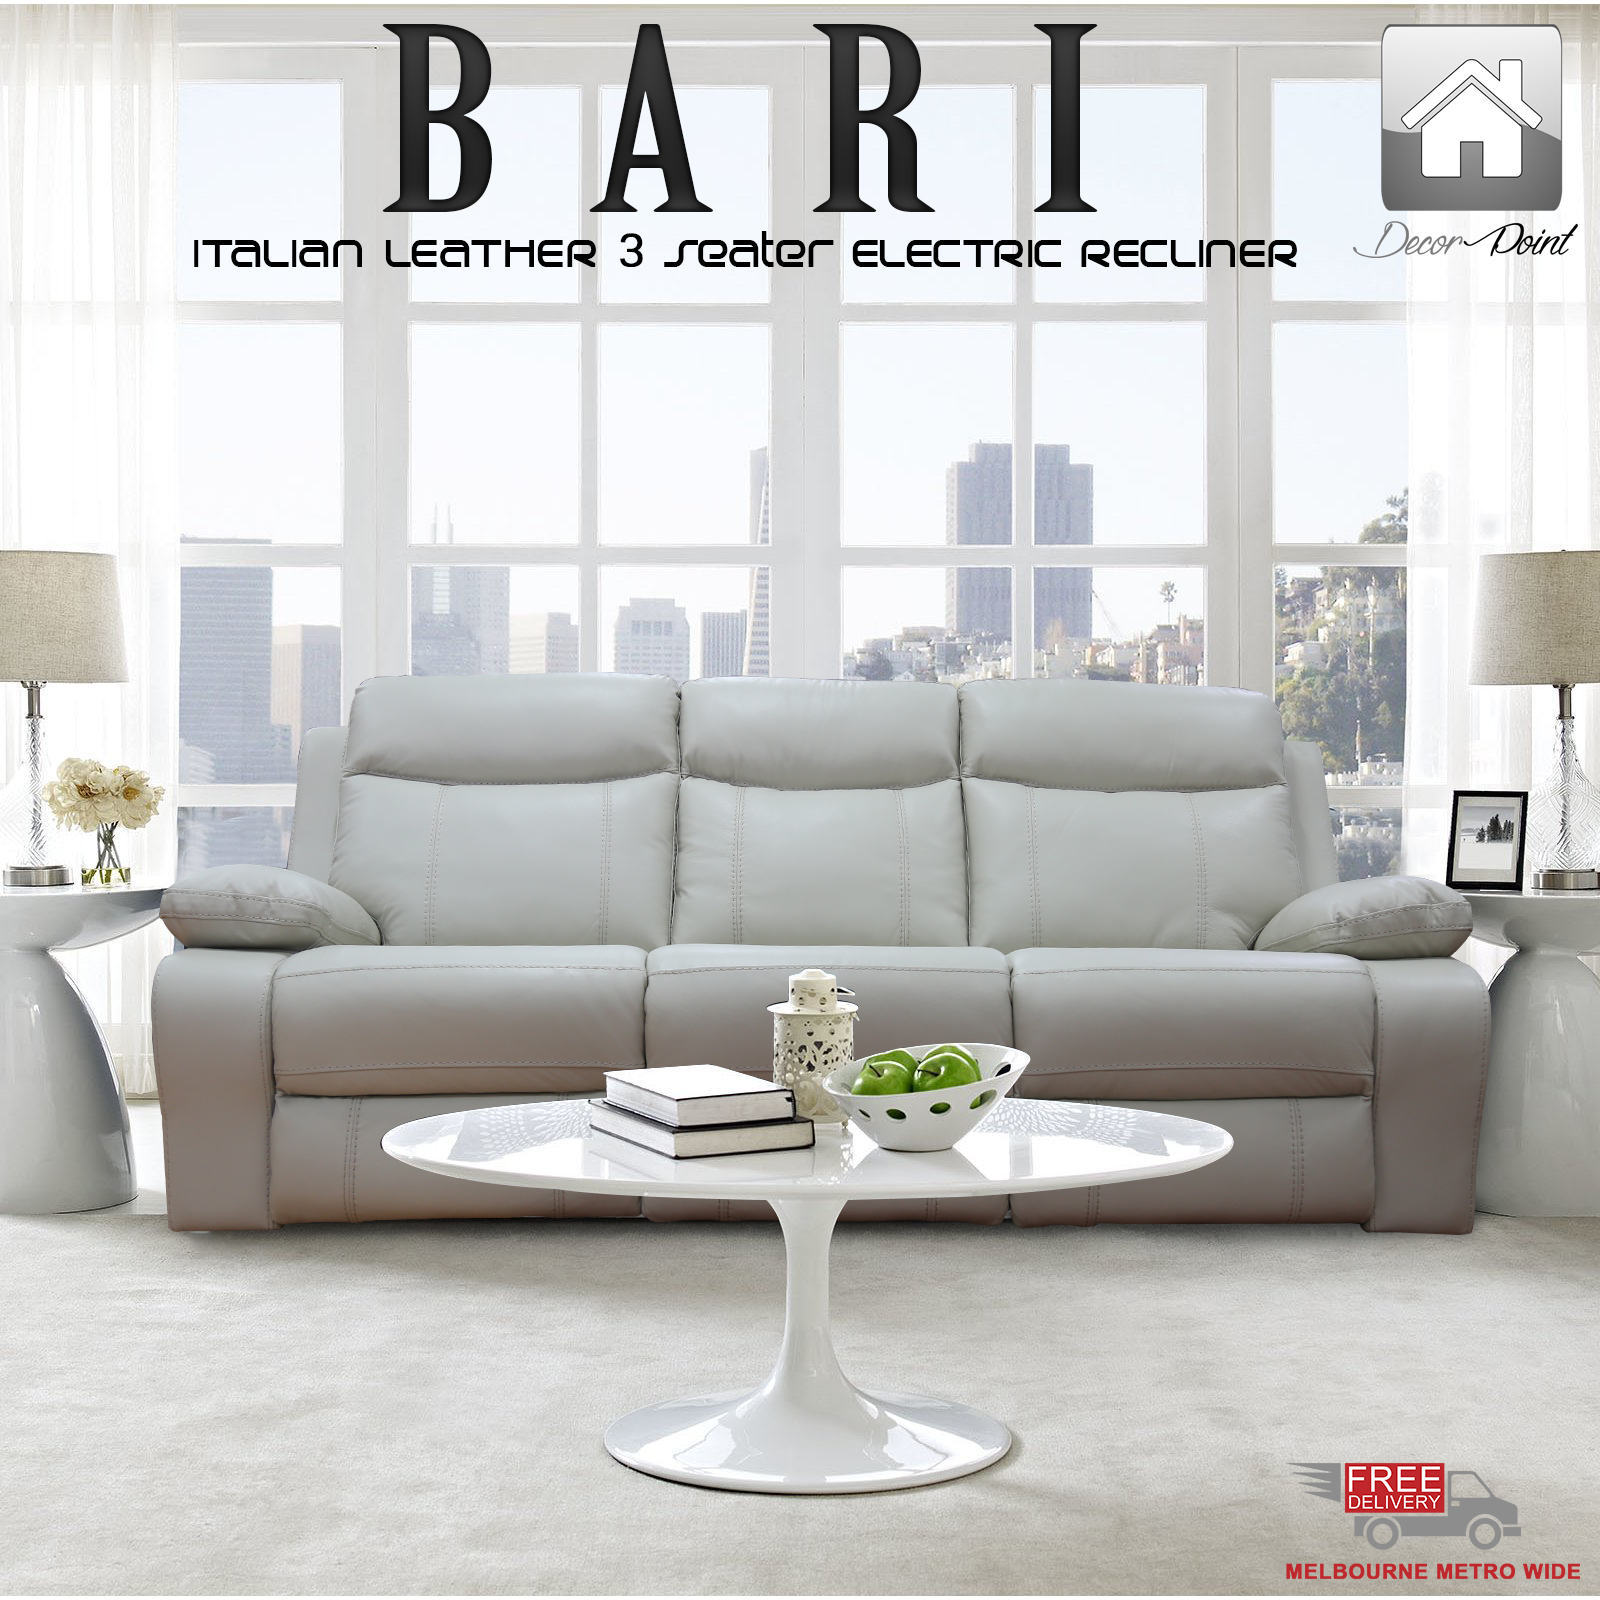 Ultra Modern Kitchen Designs You Must See Utterly Luxury: New Luxury 3 Seater Italian Leather Bari Electric Recliner